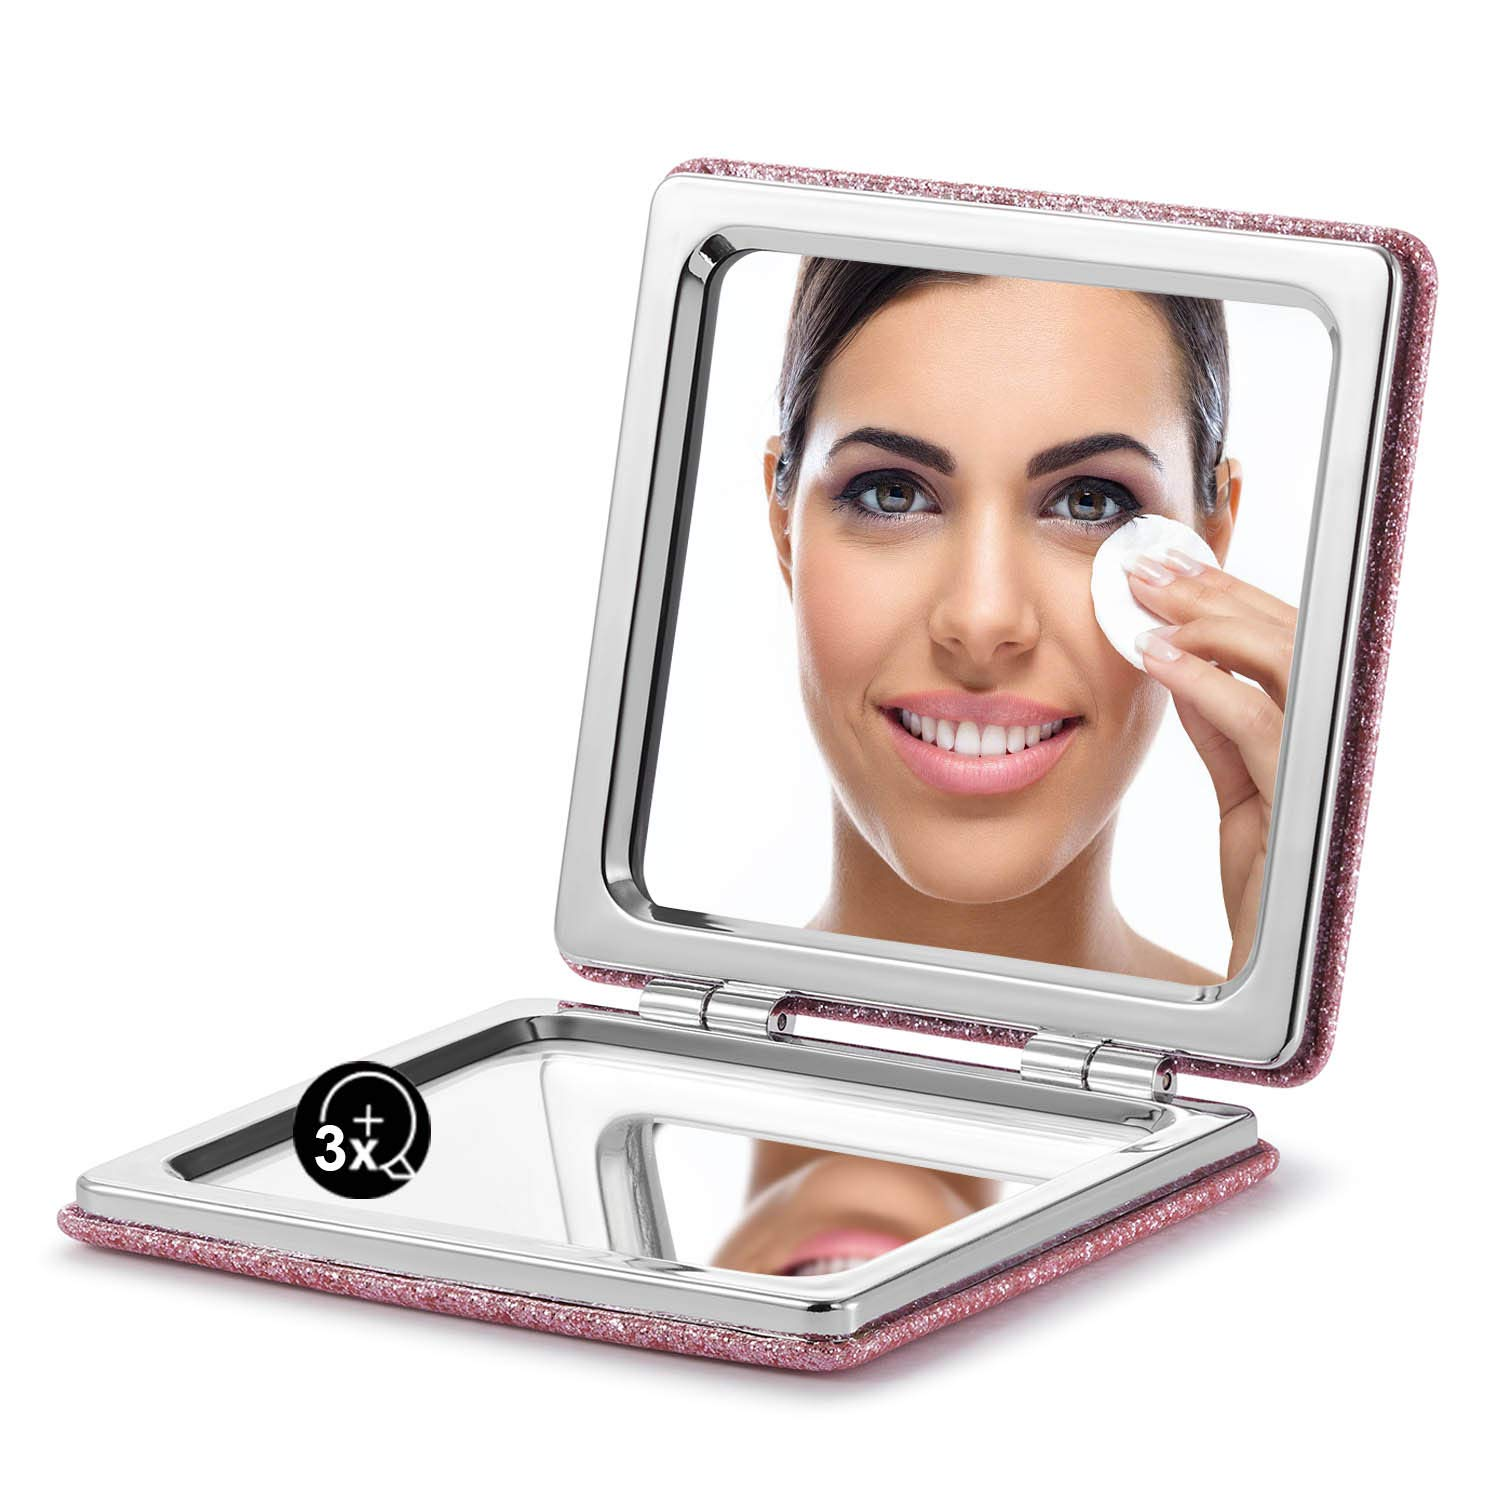 OMIRO Compact Mirror, Glitter PU 1X 3X Magnification, Ultra Portable for Purses Pink